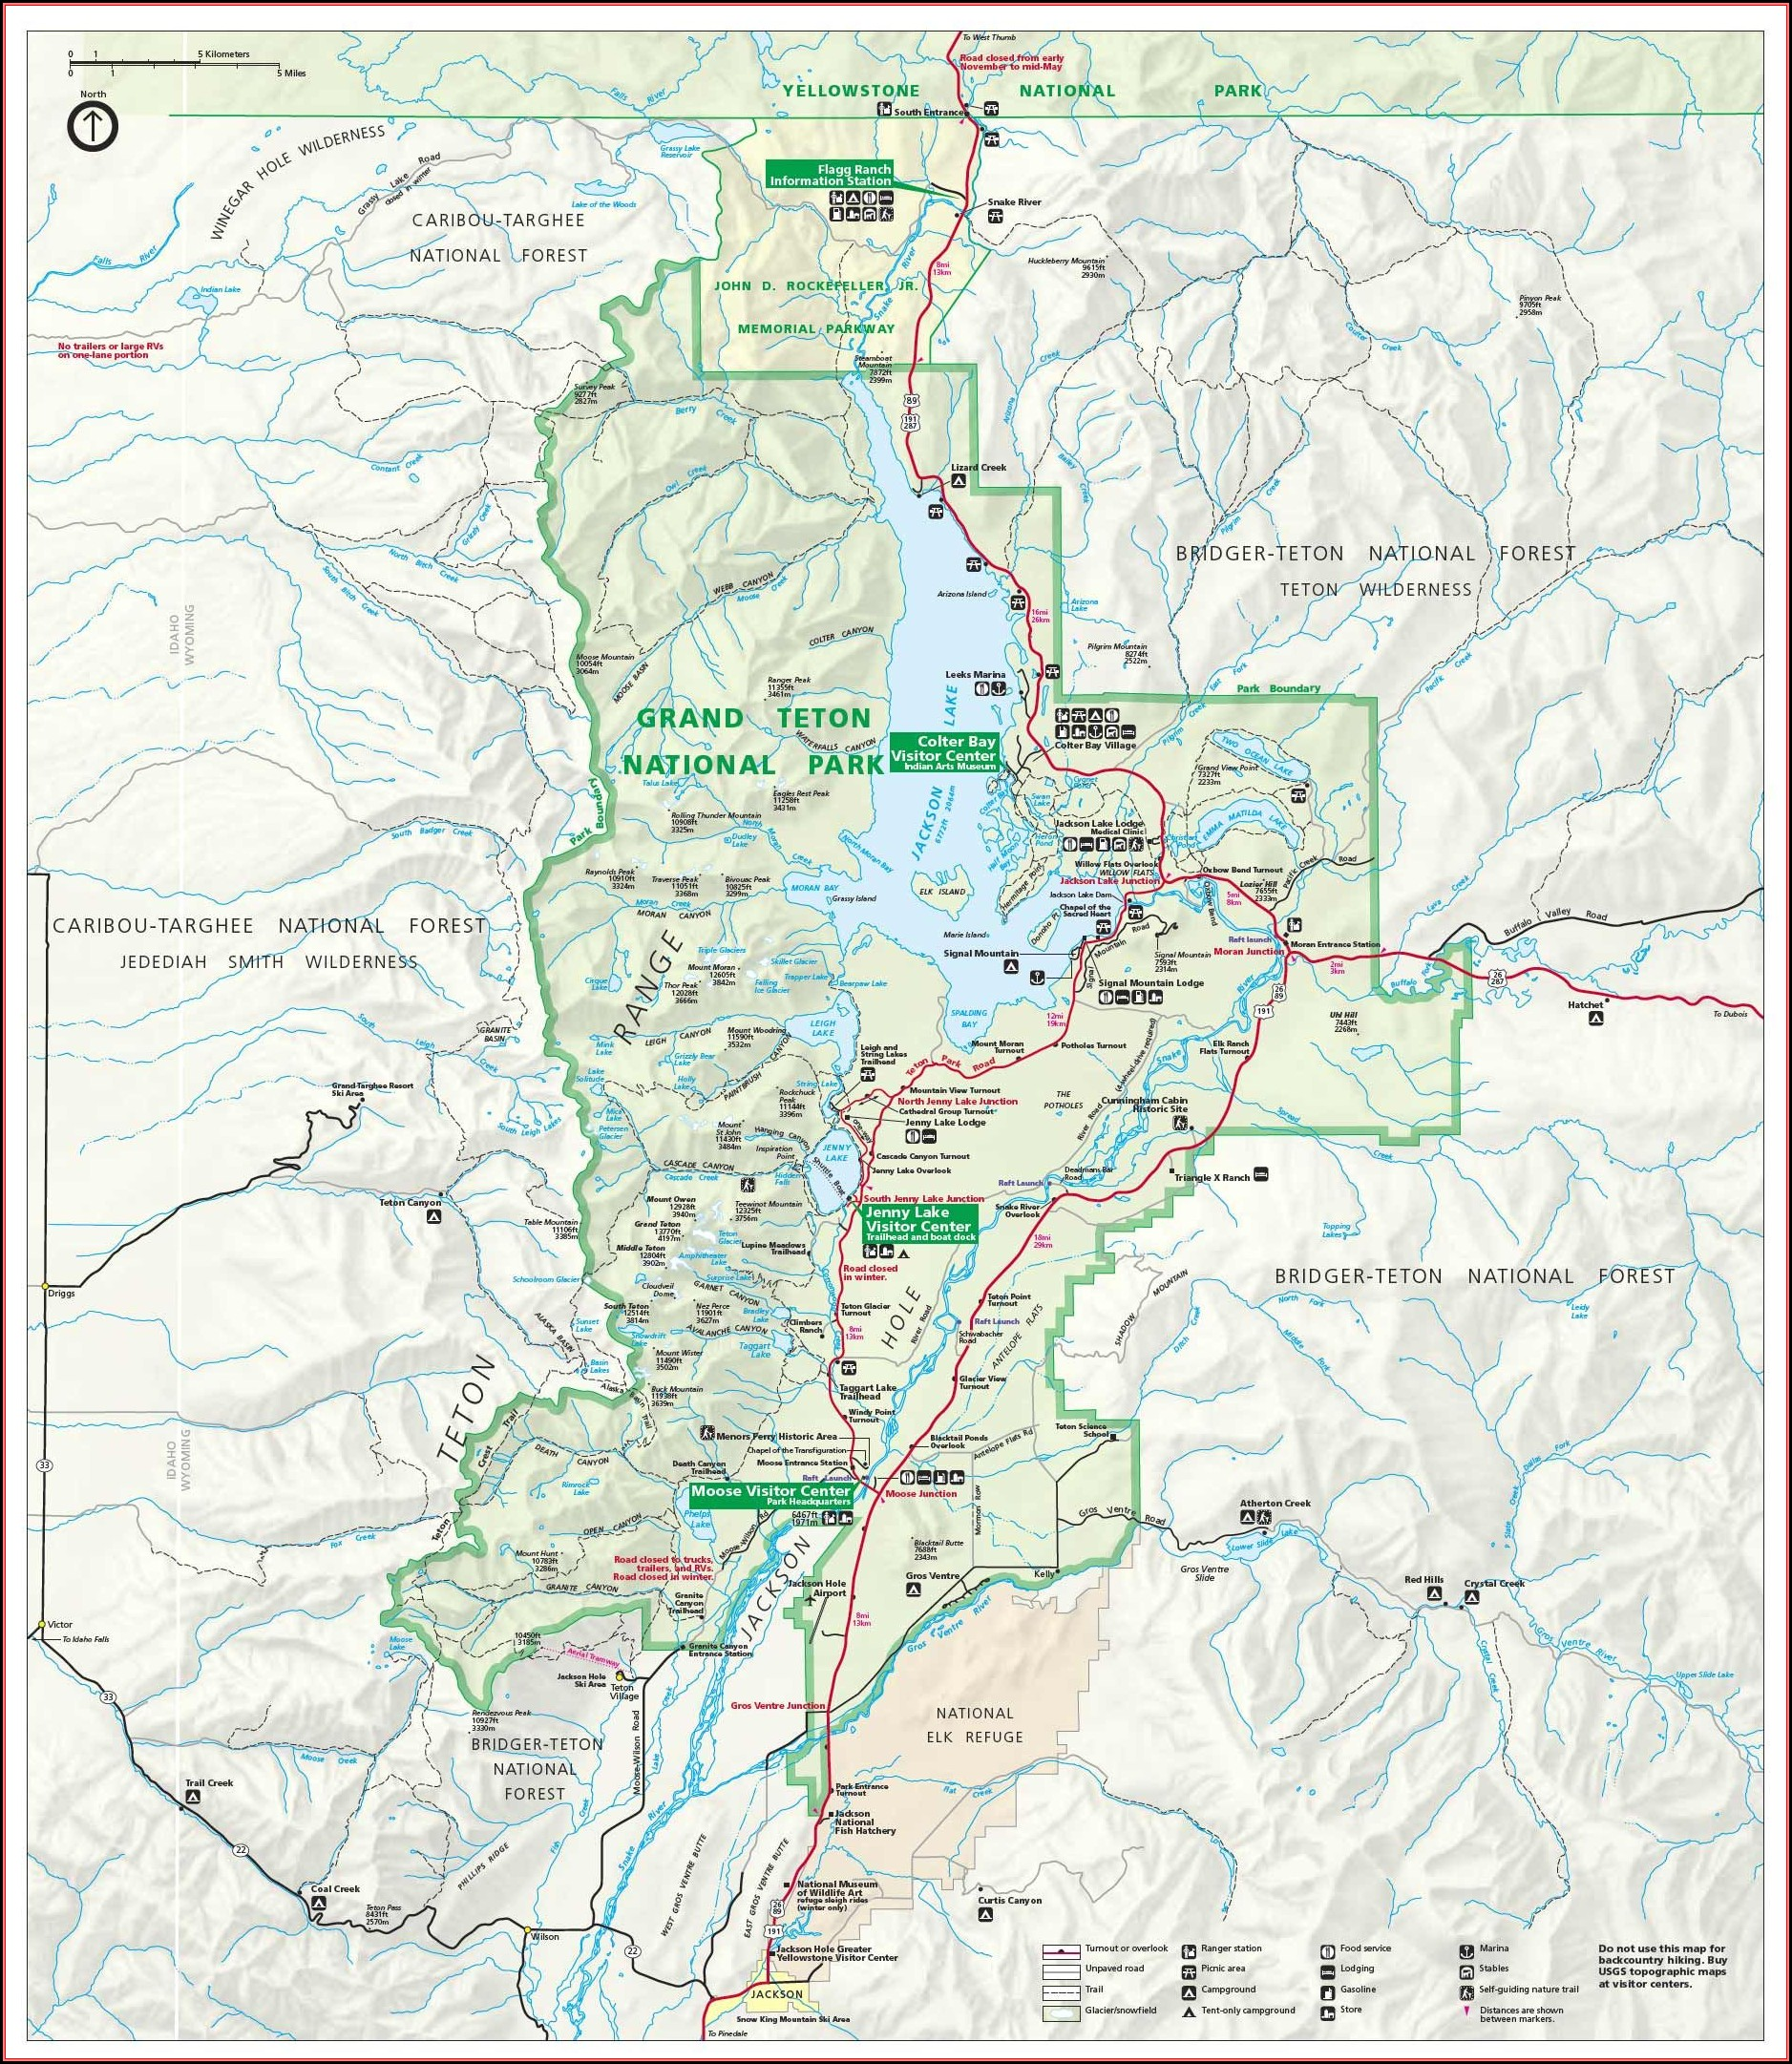 Grand Teton National Park Mapquest